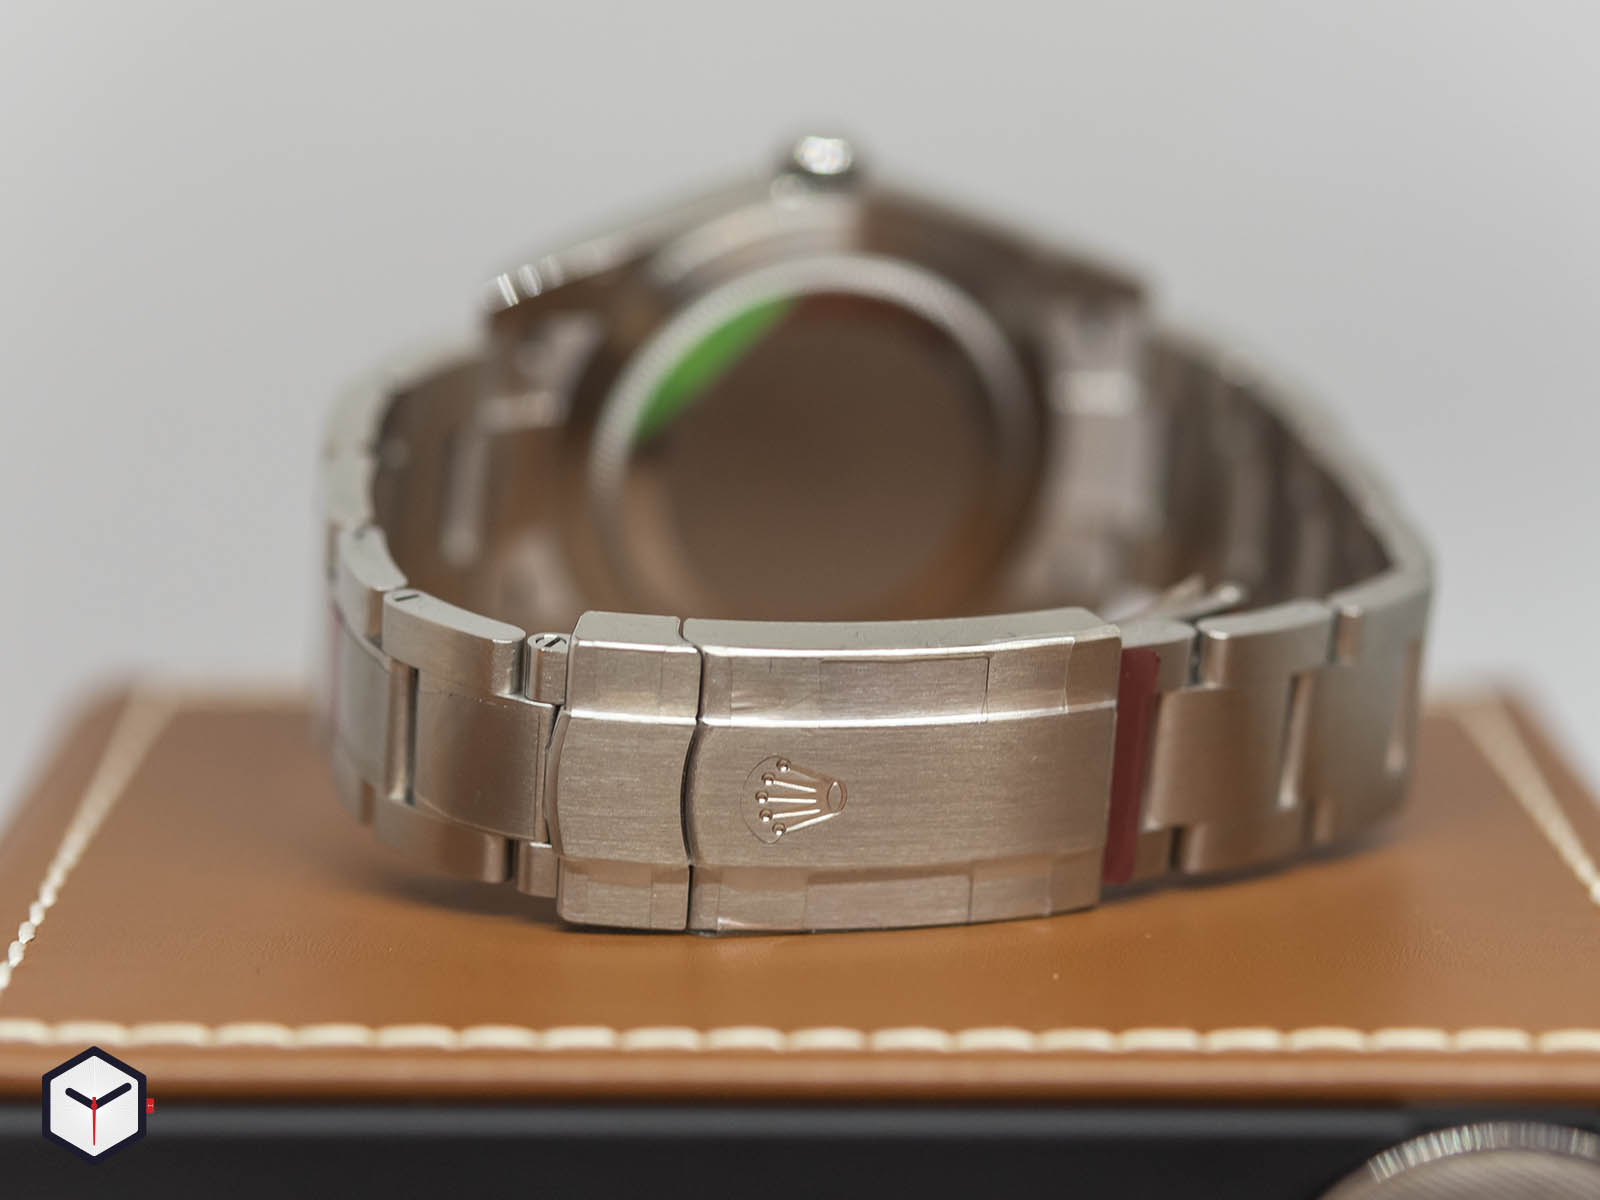 rolex-oyster-perpetual-36mm-2020-7.jpg